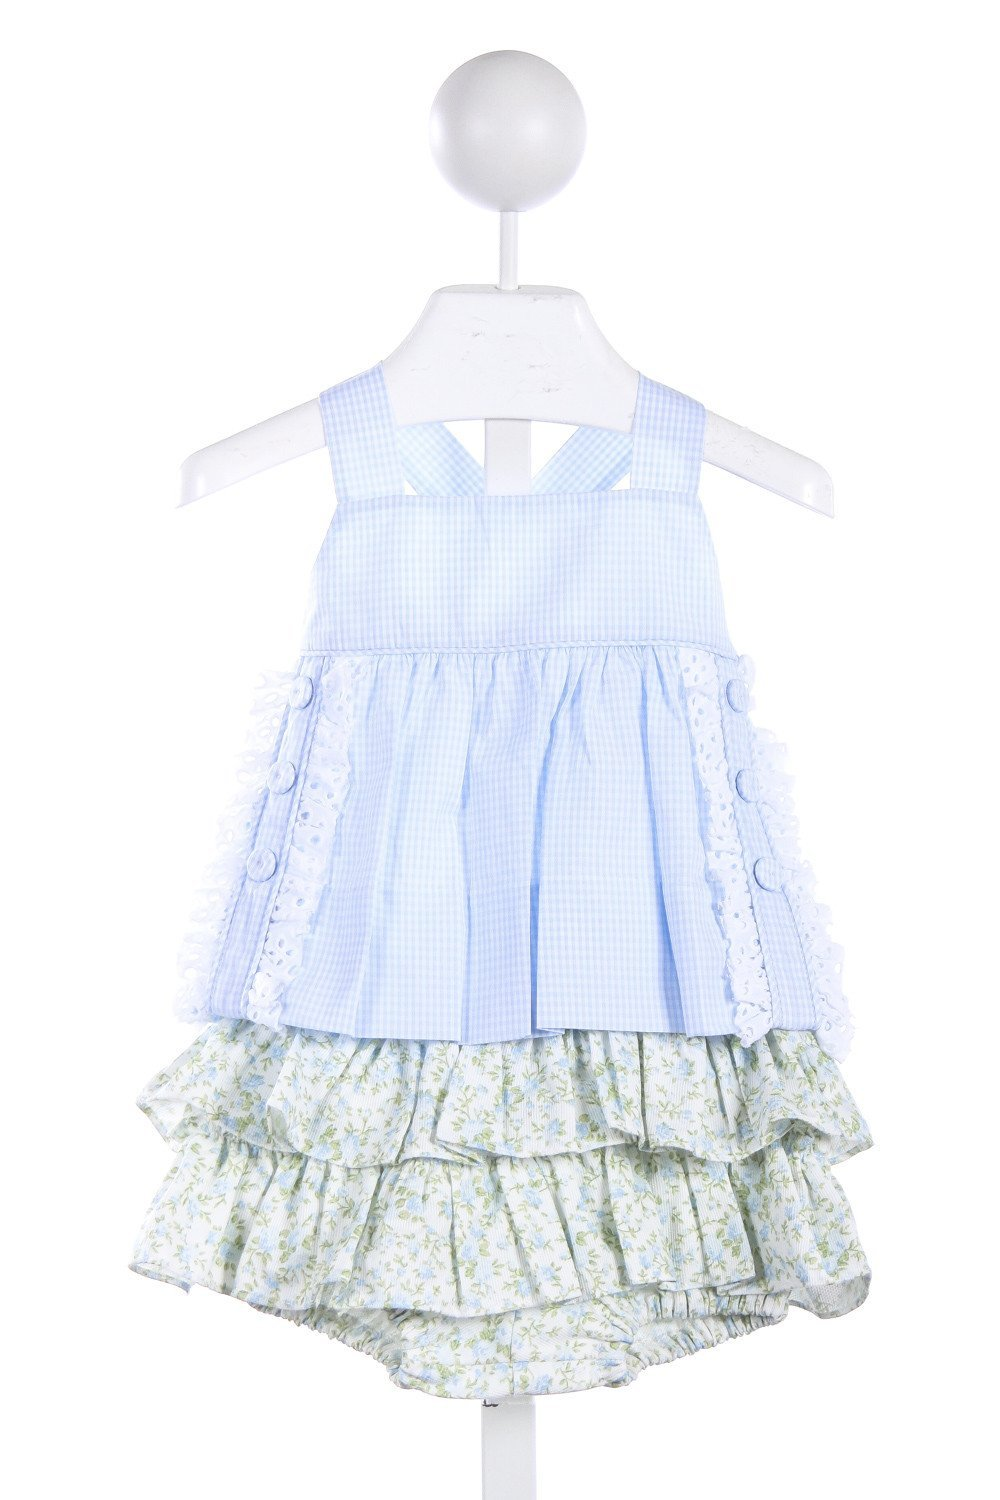 ALICE KATHLEEN BLUE GINGHAM  AND WHITE EYELET TOP WITH BLUE FLORAL RUFFLE BLOOMERS